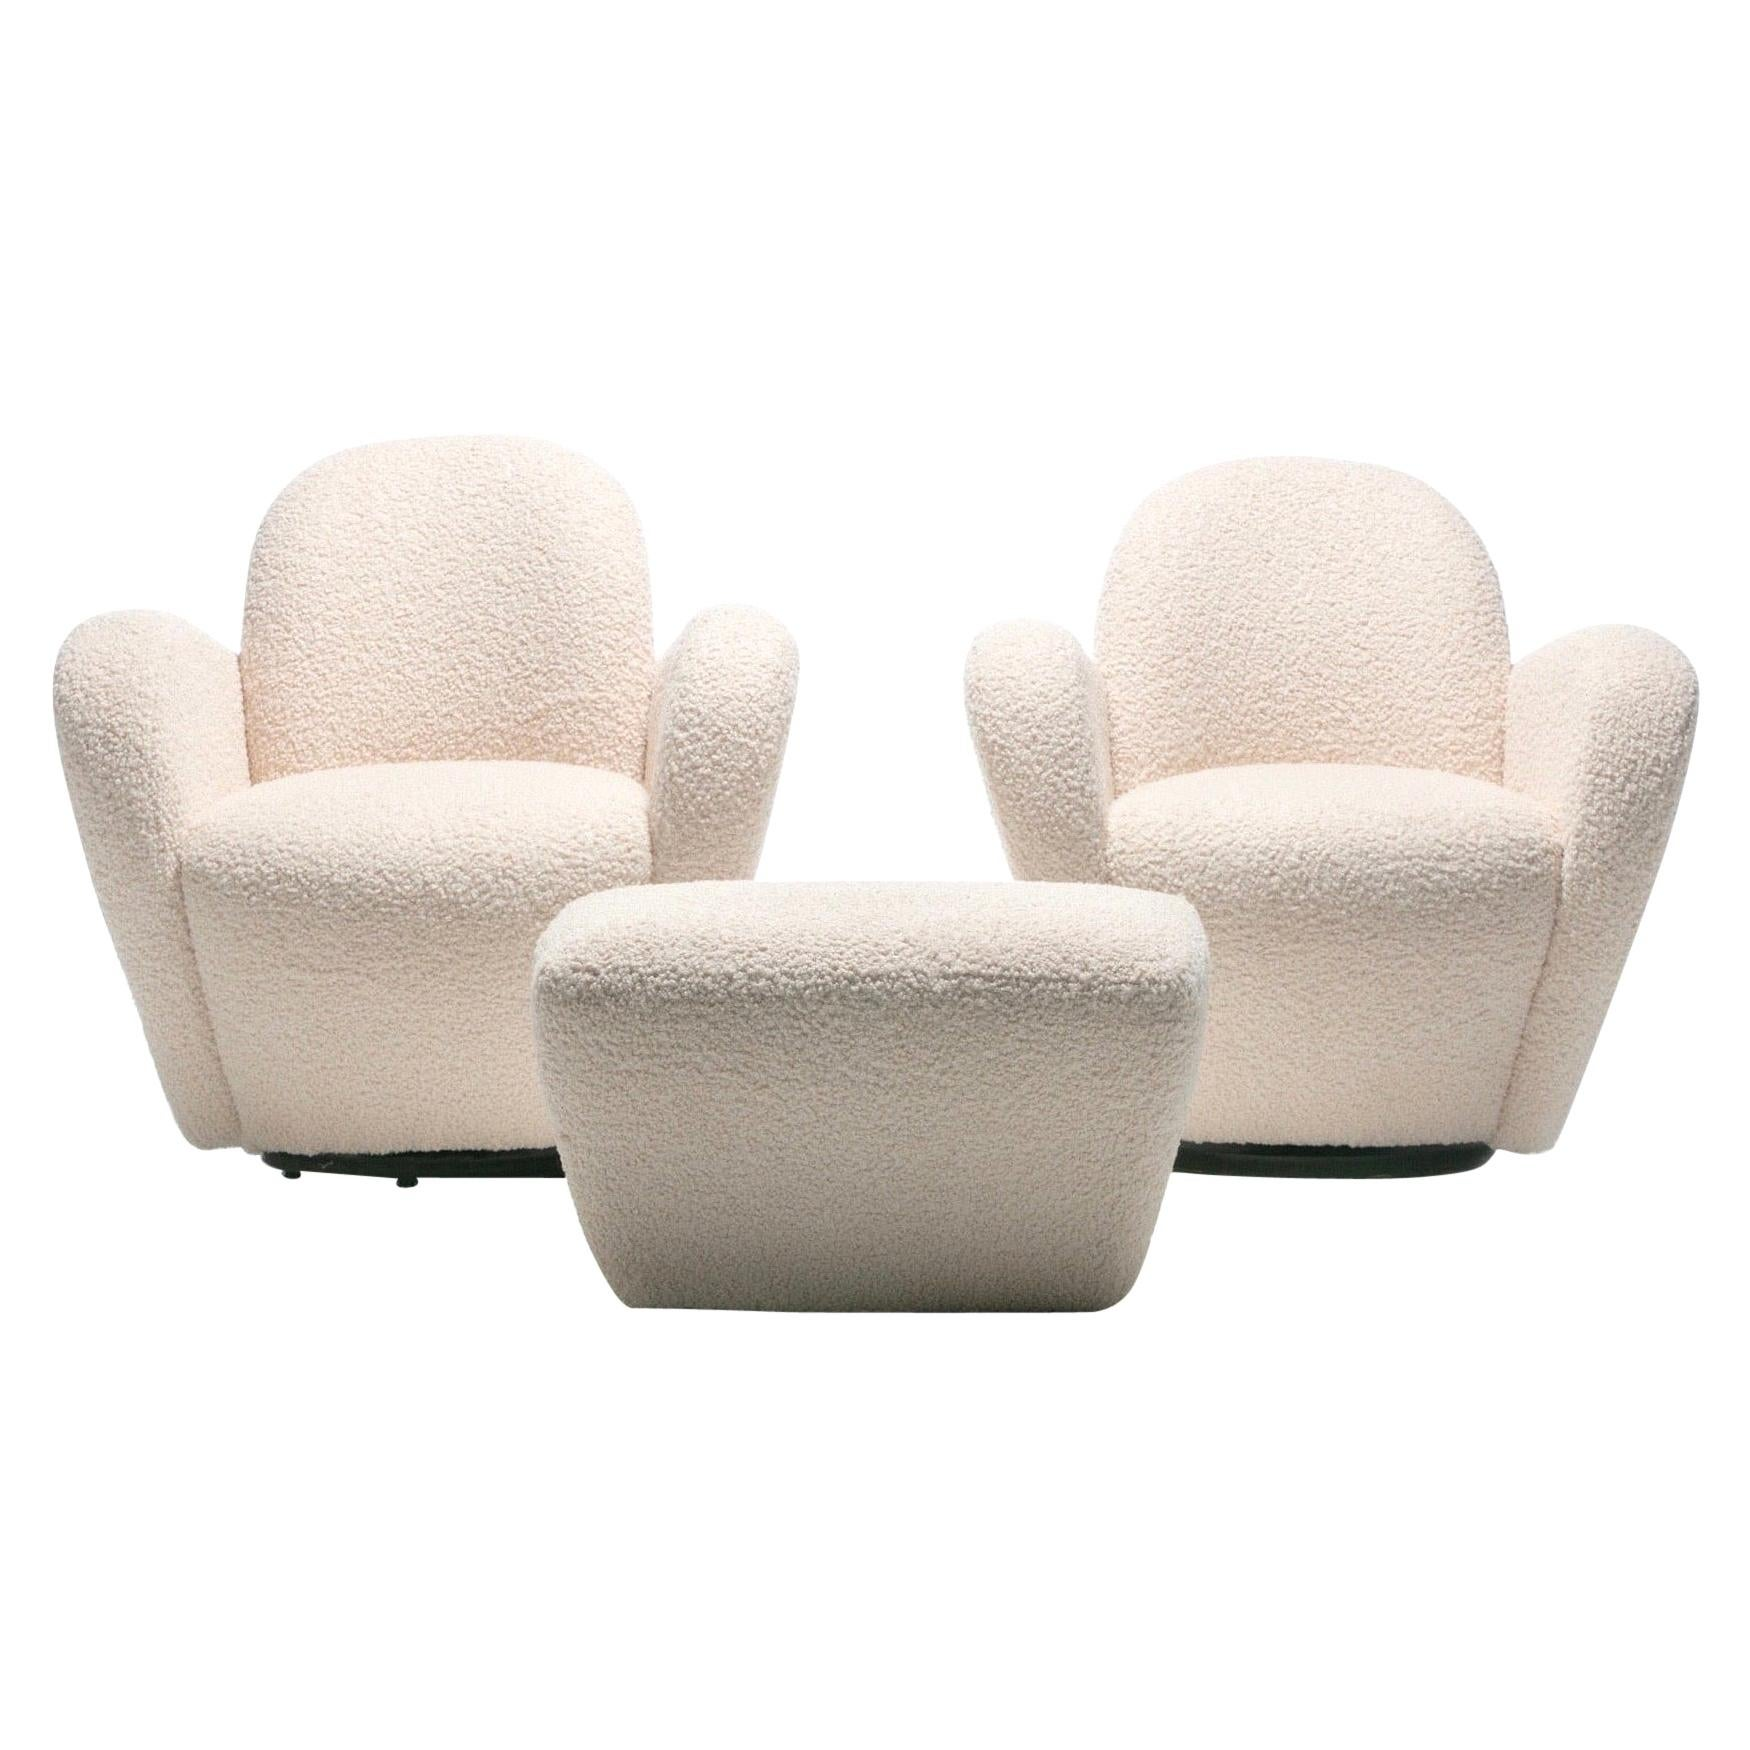 Pair of Michael Wolk Swivel Lounge Chairs in Ivory Bouclé with En-Suite Ottoman